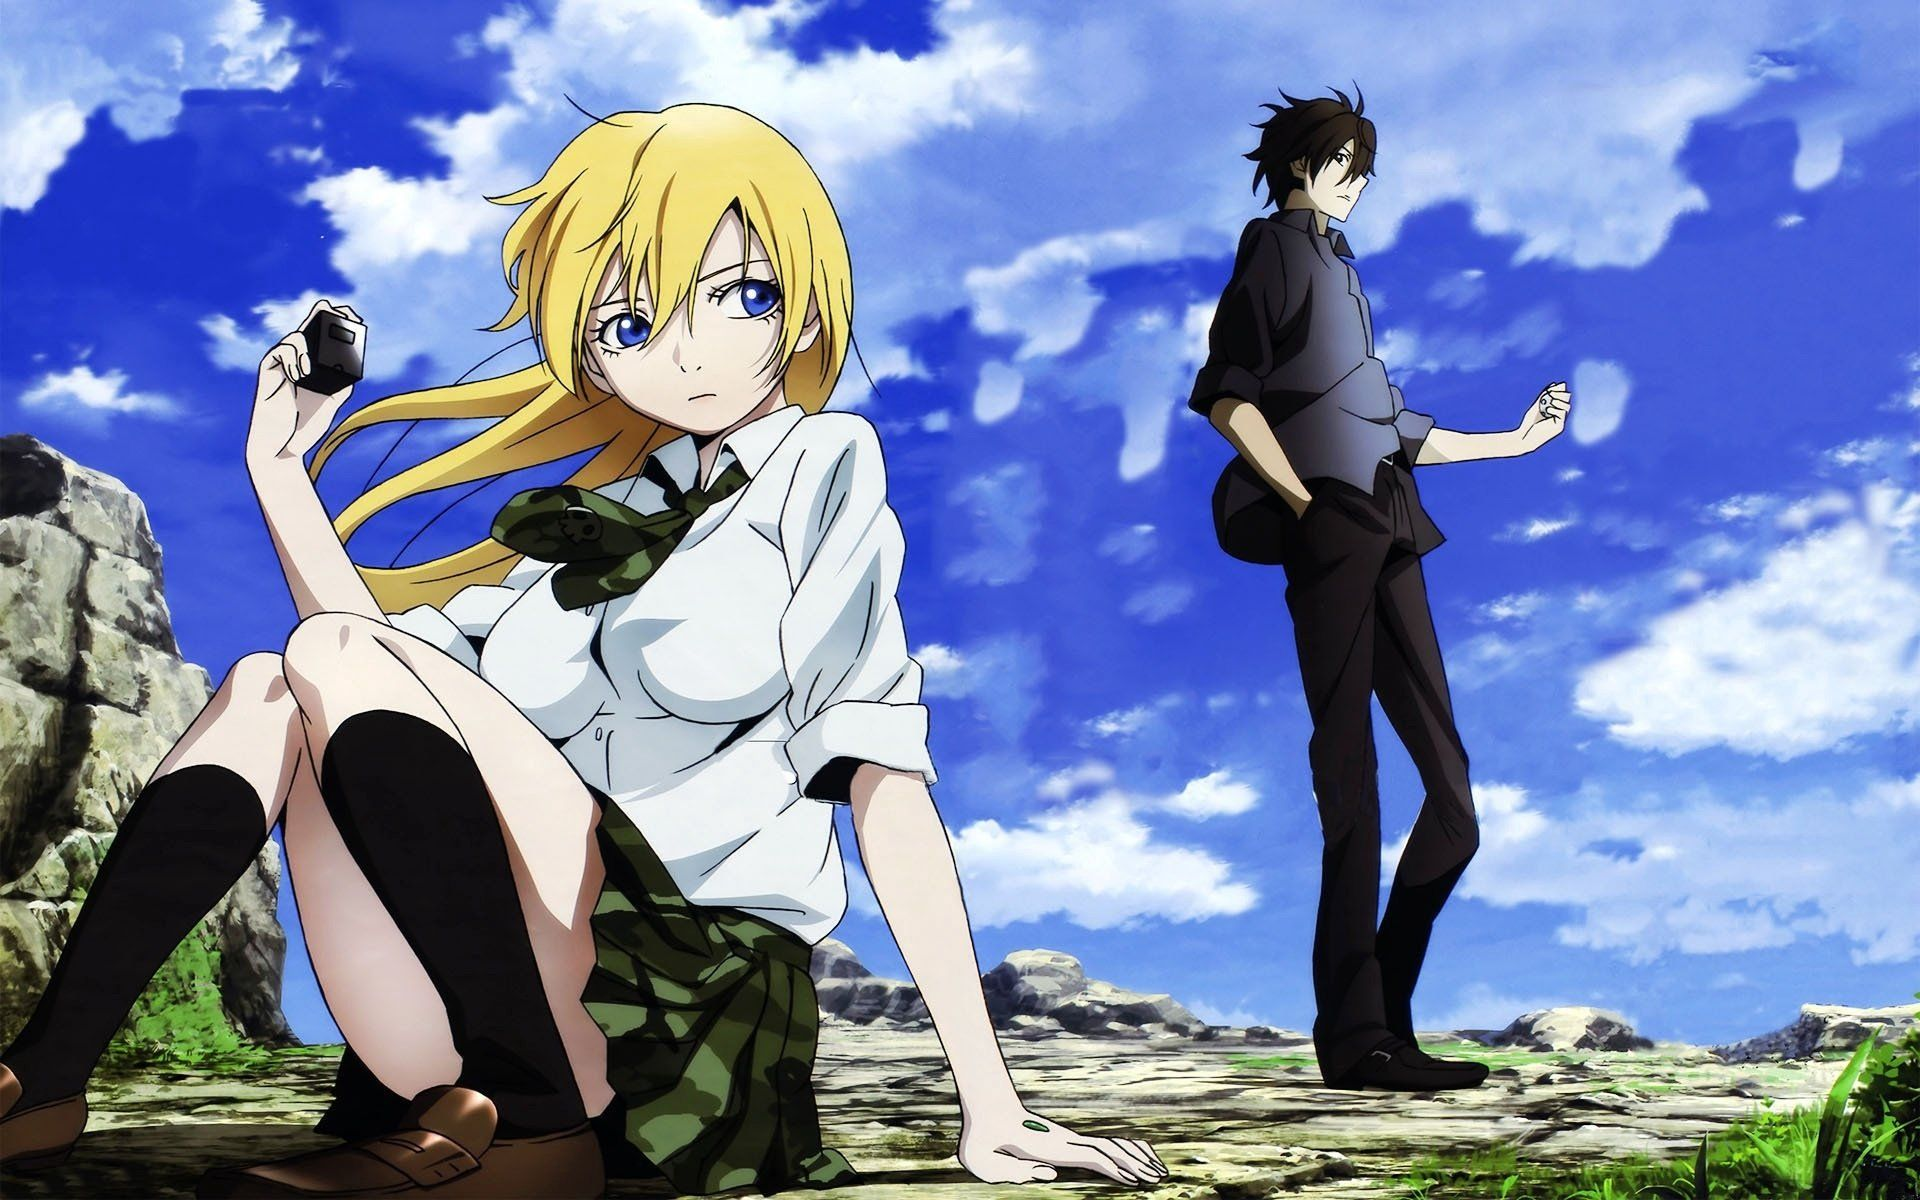 13 Himiko Btooom Hd Wallpapers Backgrounds Wallpaper Abyss